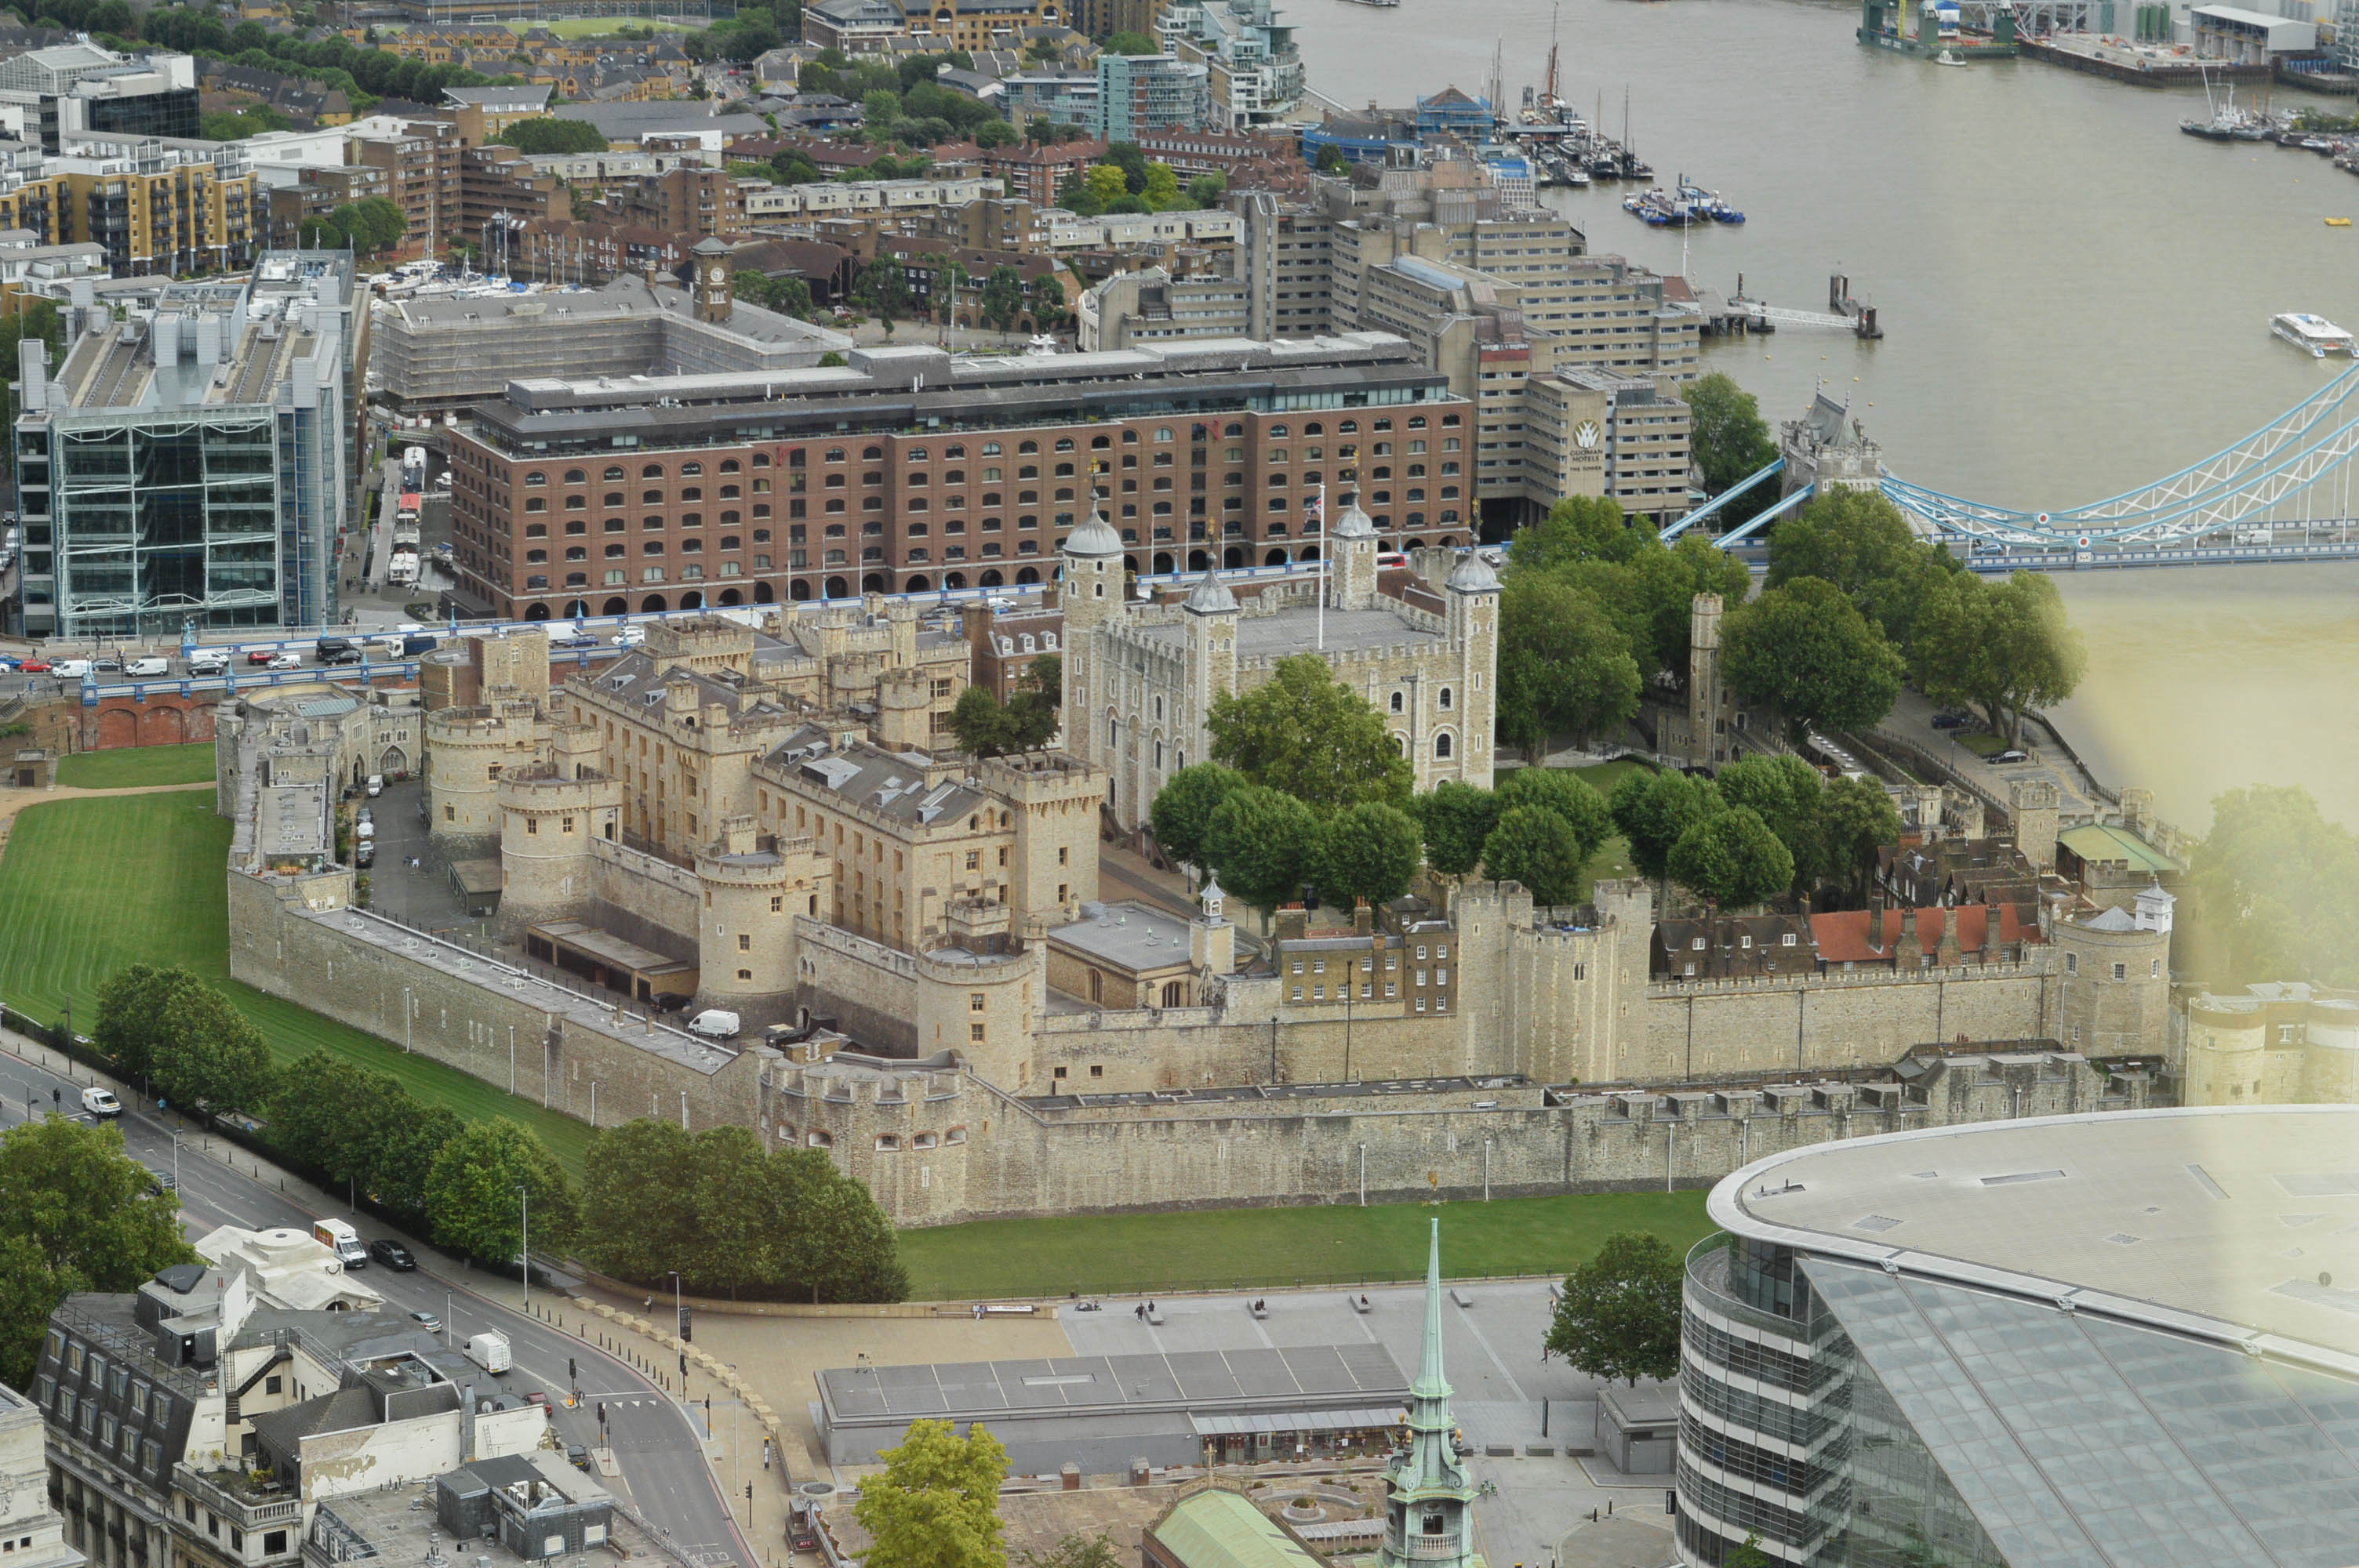 Looking down to Tower of London